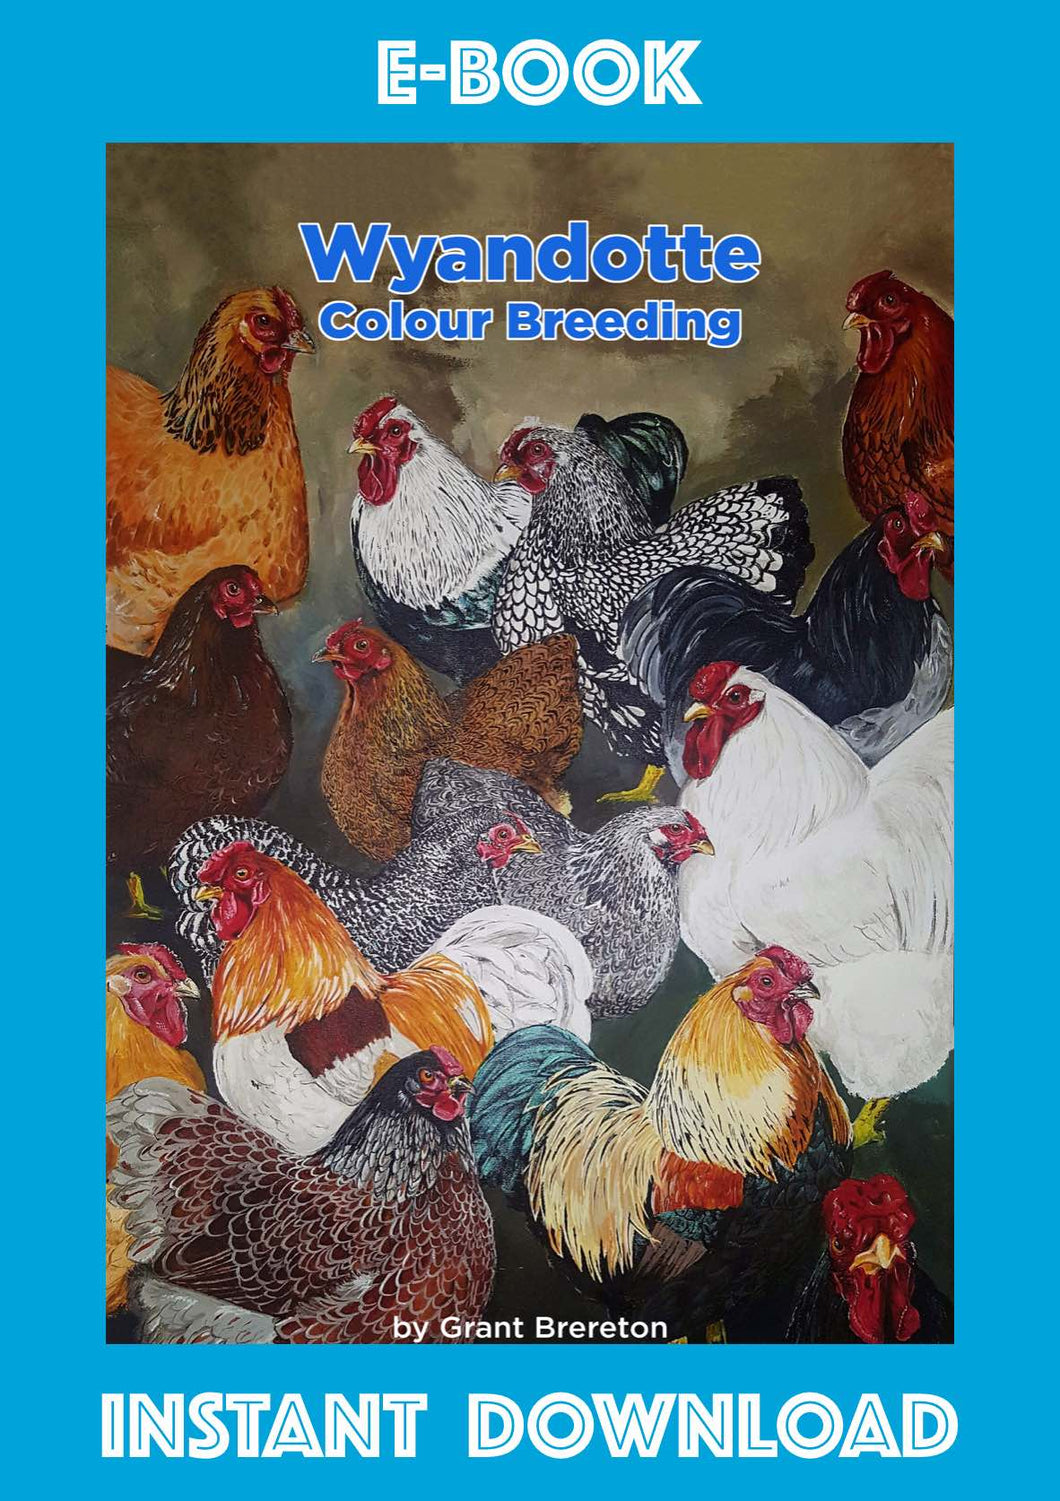 Wyandotte Colour Breeding E-Book